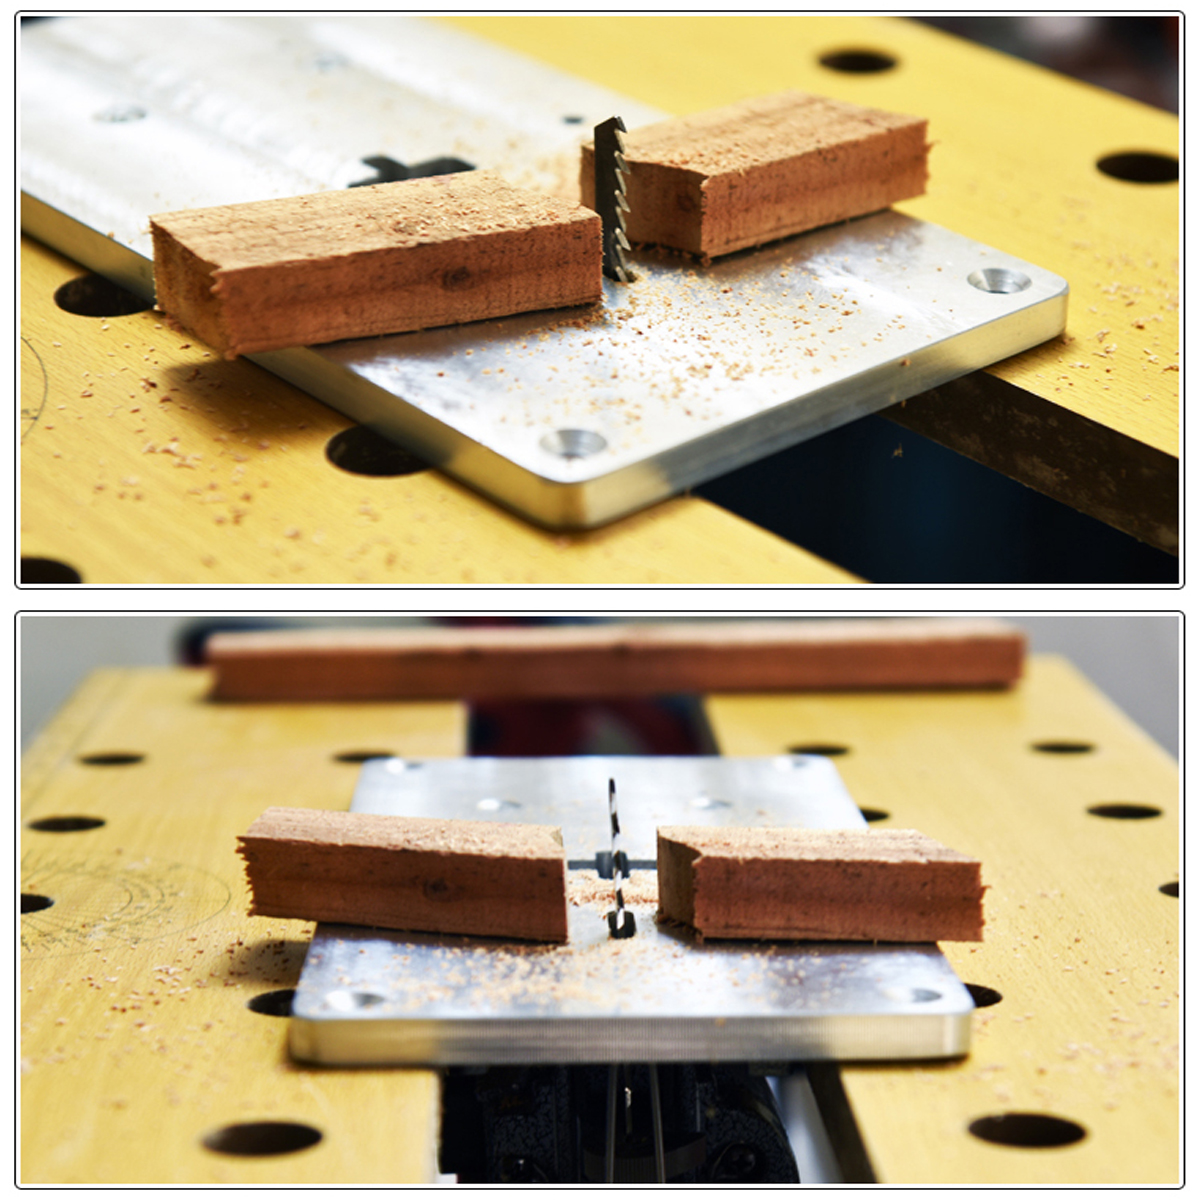 Aluminum router table insert plate with fixing screws for jig saw shipping methods greentooth Choice Image